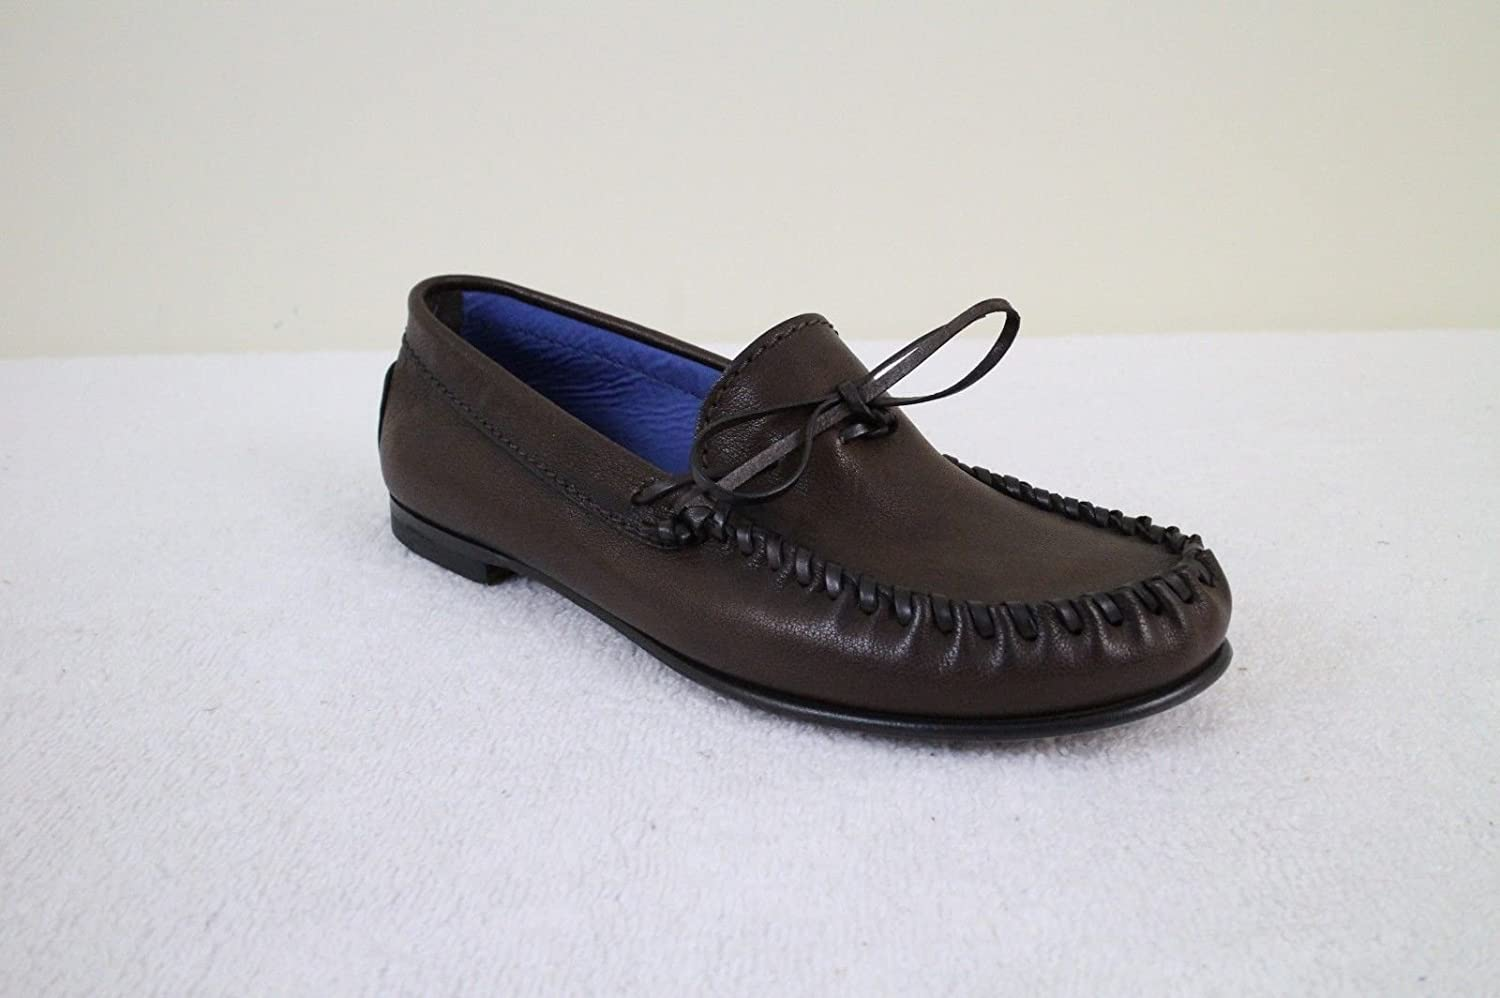 Amazon.com : Tom Ford Mens Brown Leather Moccasins Shoes Size 10.5 T : Sports & Outdoors